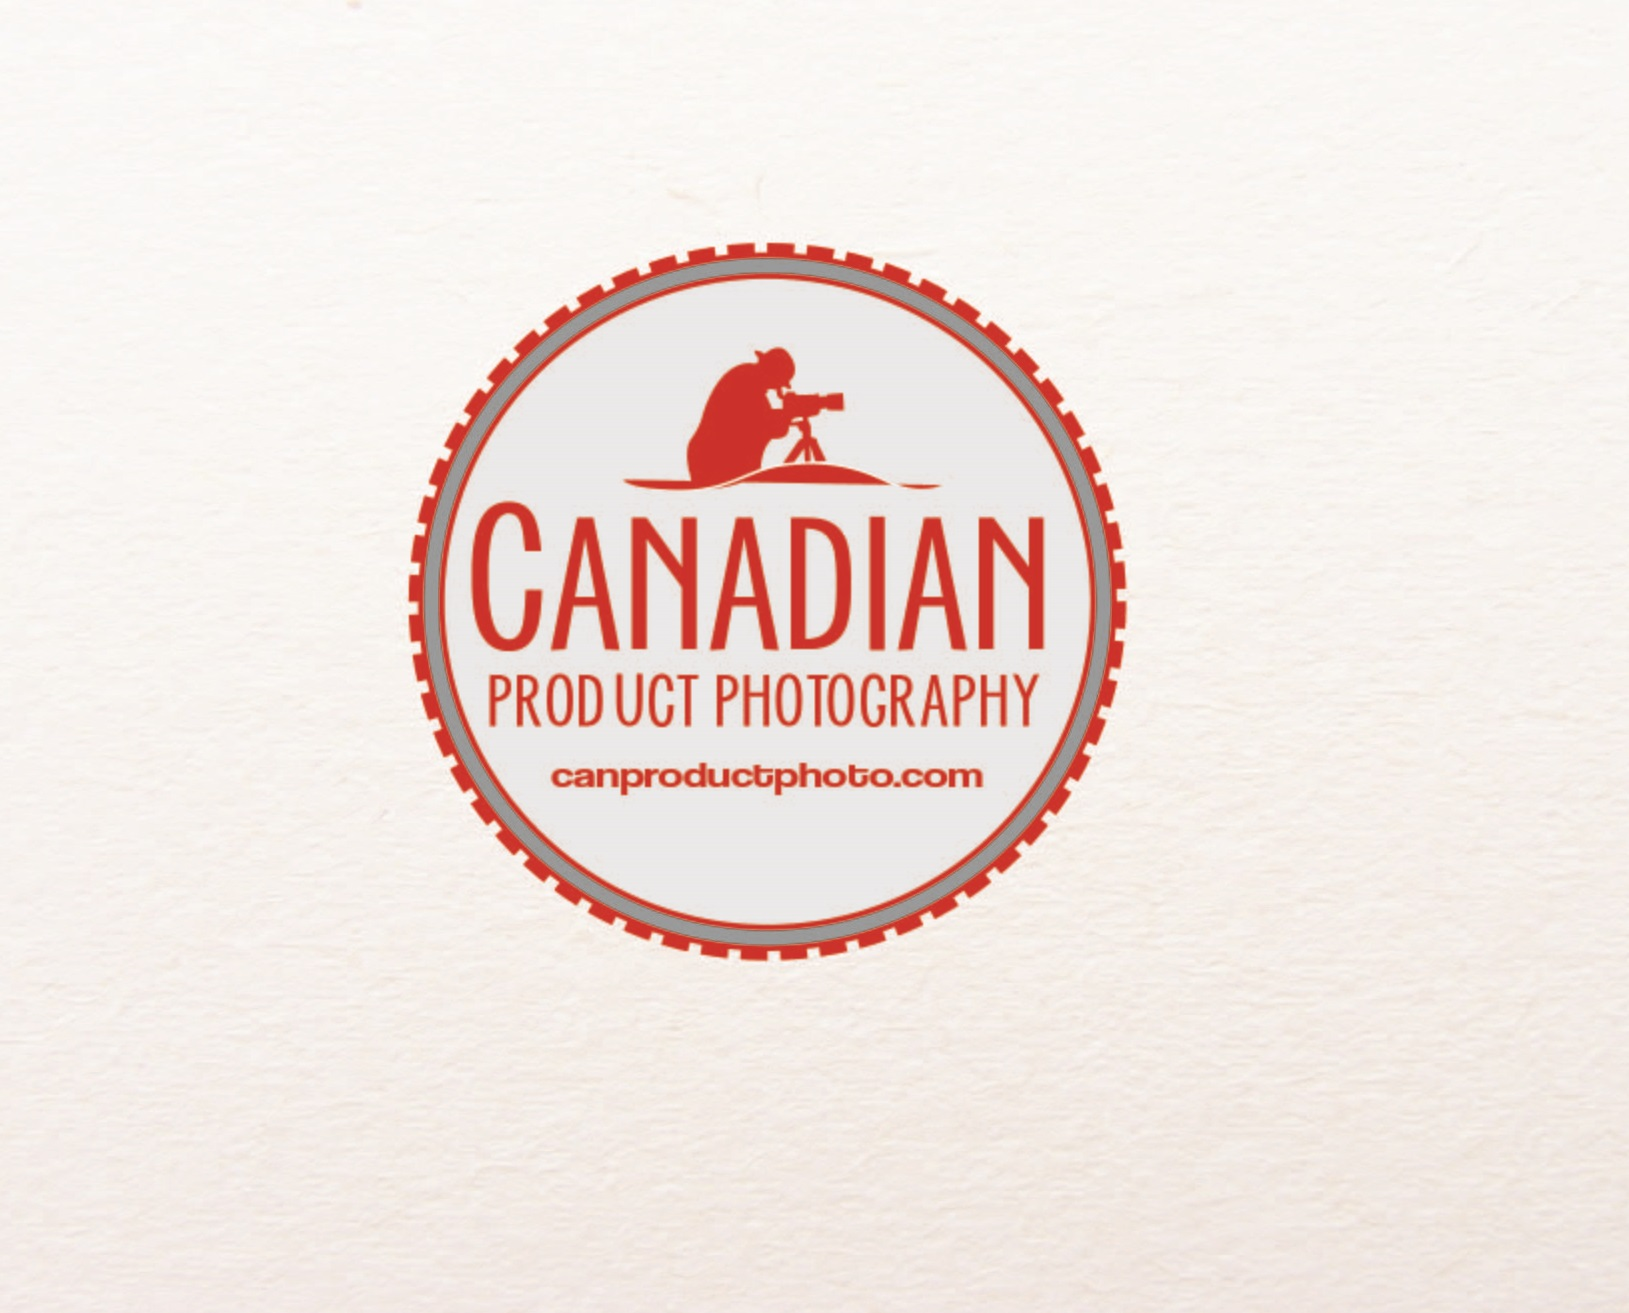 Logo Design by iwyn - Entry No. 53 in the Logo Design Contest Artistic Logo Design for Canadian Product Photography.